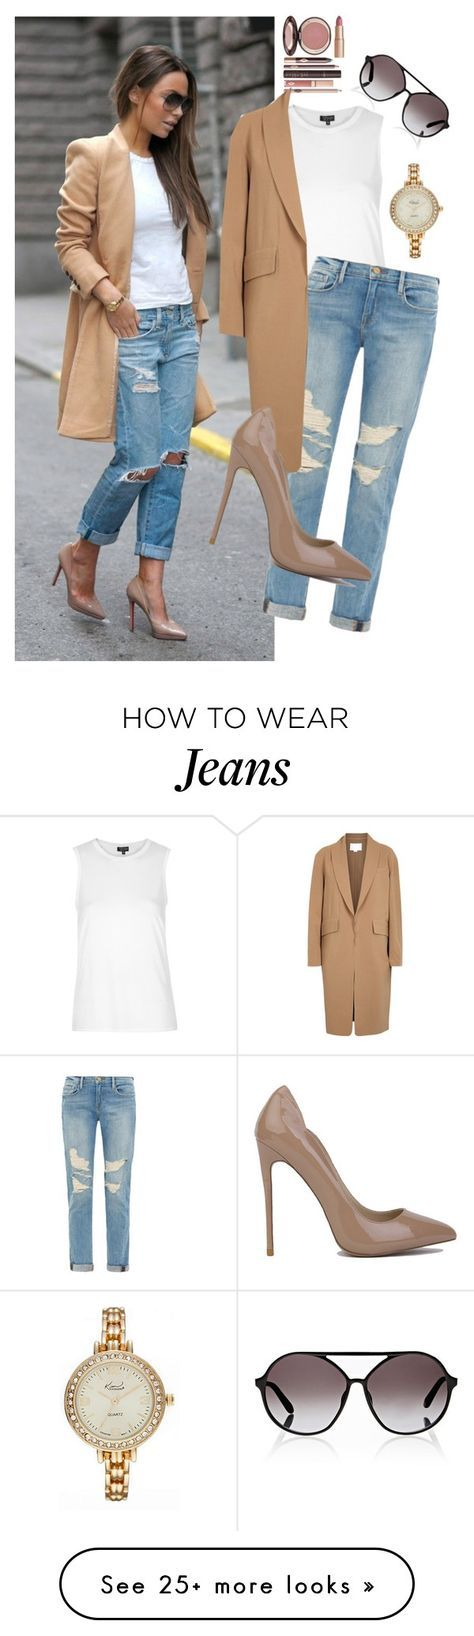 """Boyfriend Jeans Street Look"" by iliketodesign on Polyvore featuring Topshop, Kim Rogers, Charlotte Tilbury, Frame Denim, Alexander Wang, Akira and Valentino"